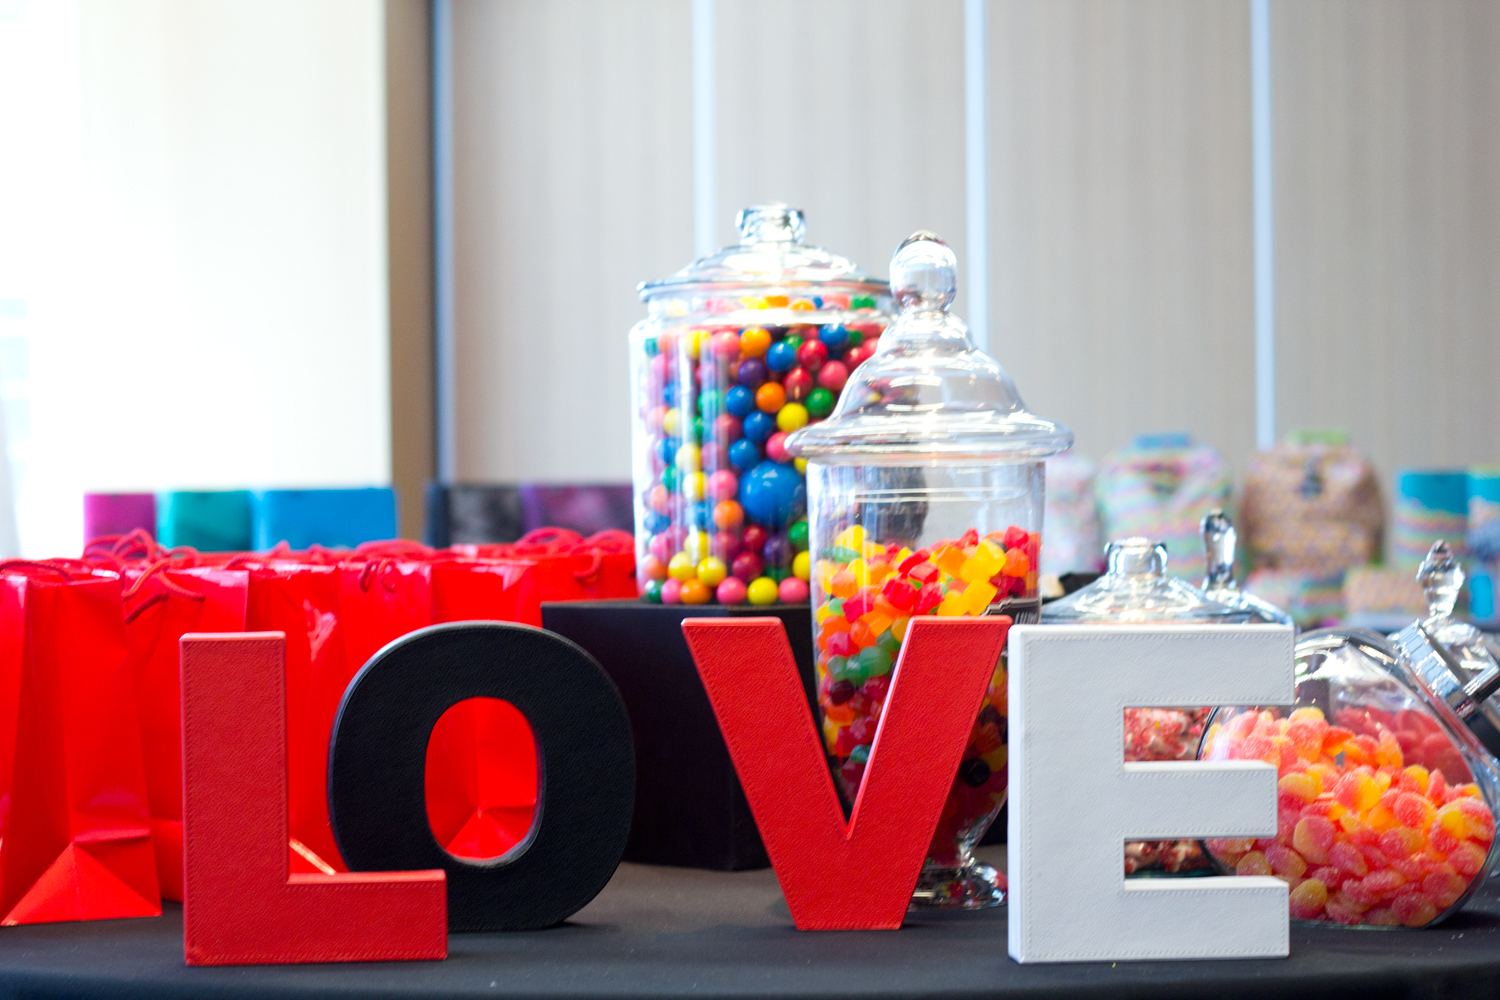 love-signs, gum-balls, colourful-candies,media-event